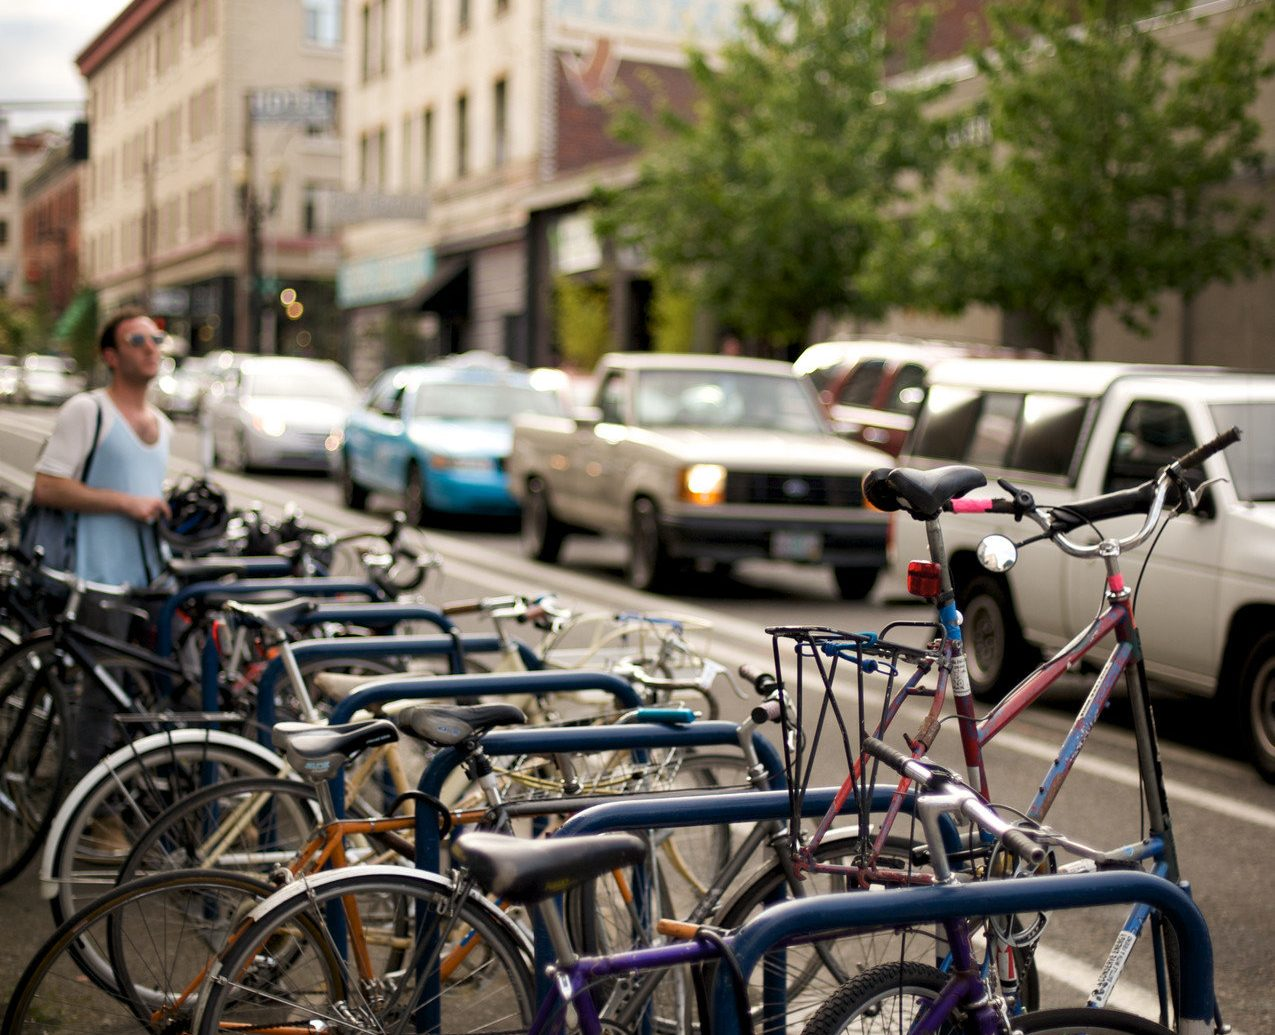 Bikes Biking Buildings cars city streets Offbeat people Roads streets trees Trip Ideas urban bicycle outdoor building cycling parked vehicle lane urban area sidewalk human settlement street sports equipment tourism road cycling rack bicycle rack